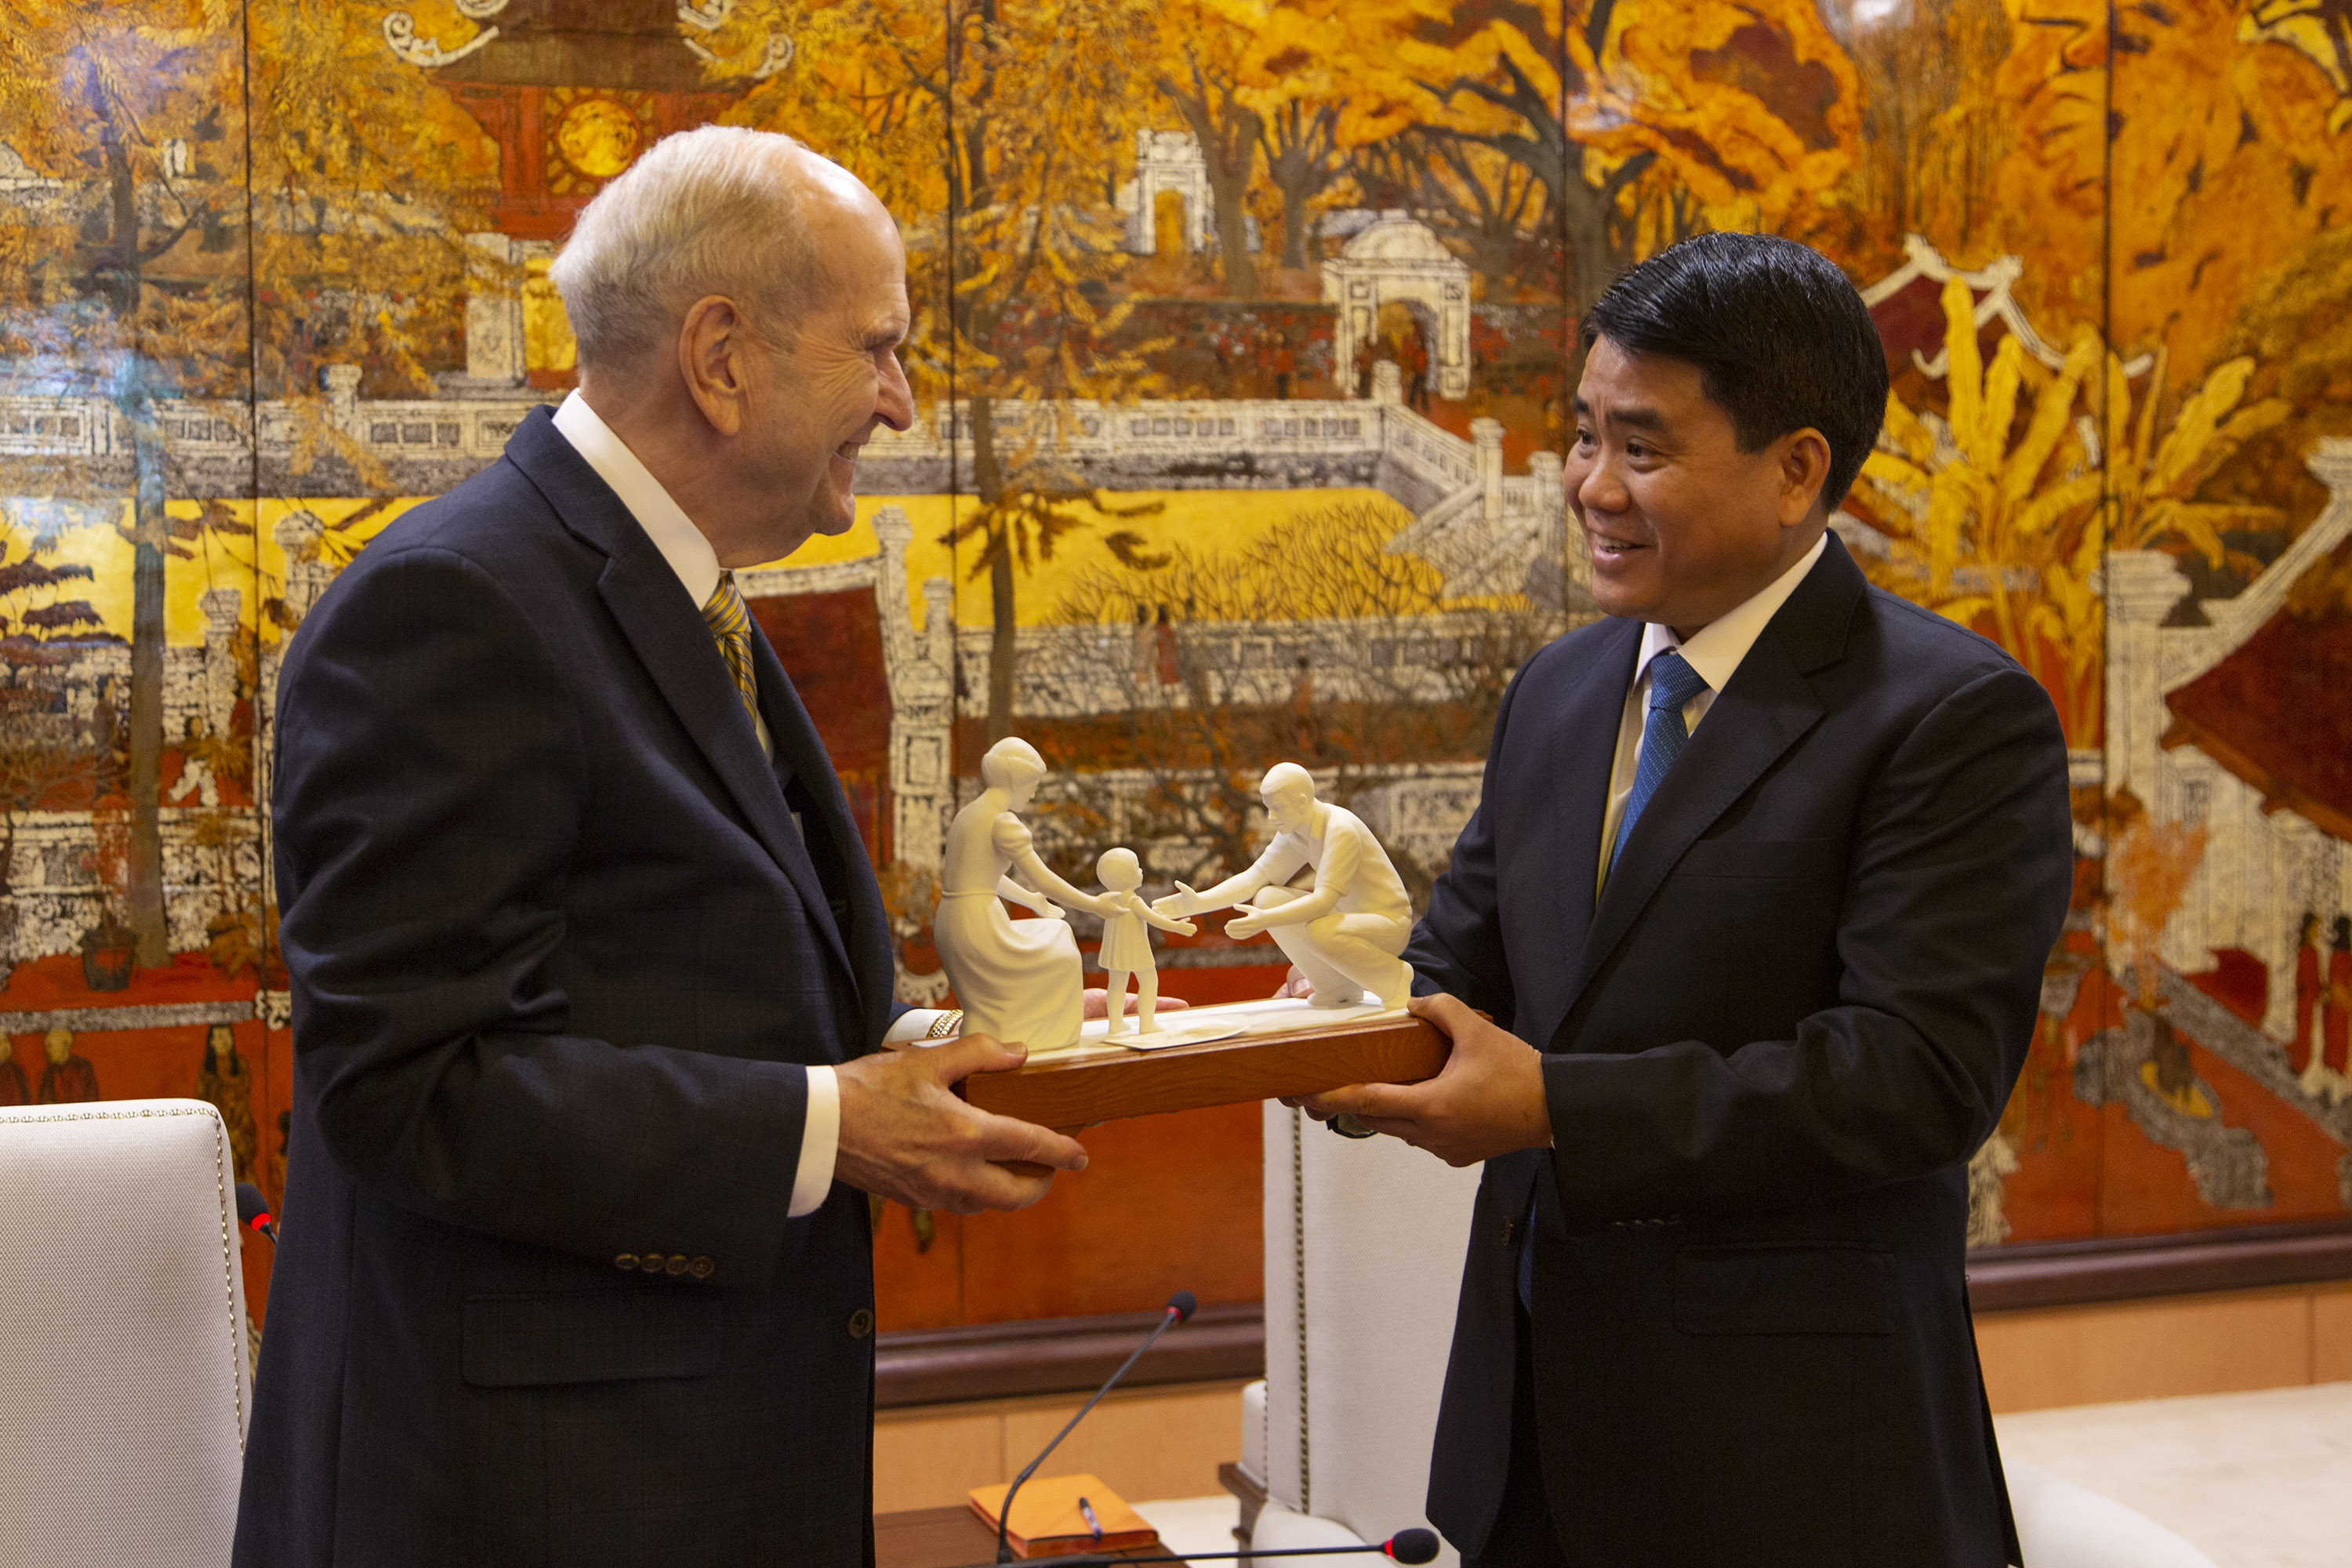 President Russell M. Nelson gives a gift to Hanoi Mayor Nguyen Duc Chung on Monday, Nov. 18, 2019. President Nelson visited Vietnam Nov. 17-18 as part of his Southeast Asia Ministry.